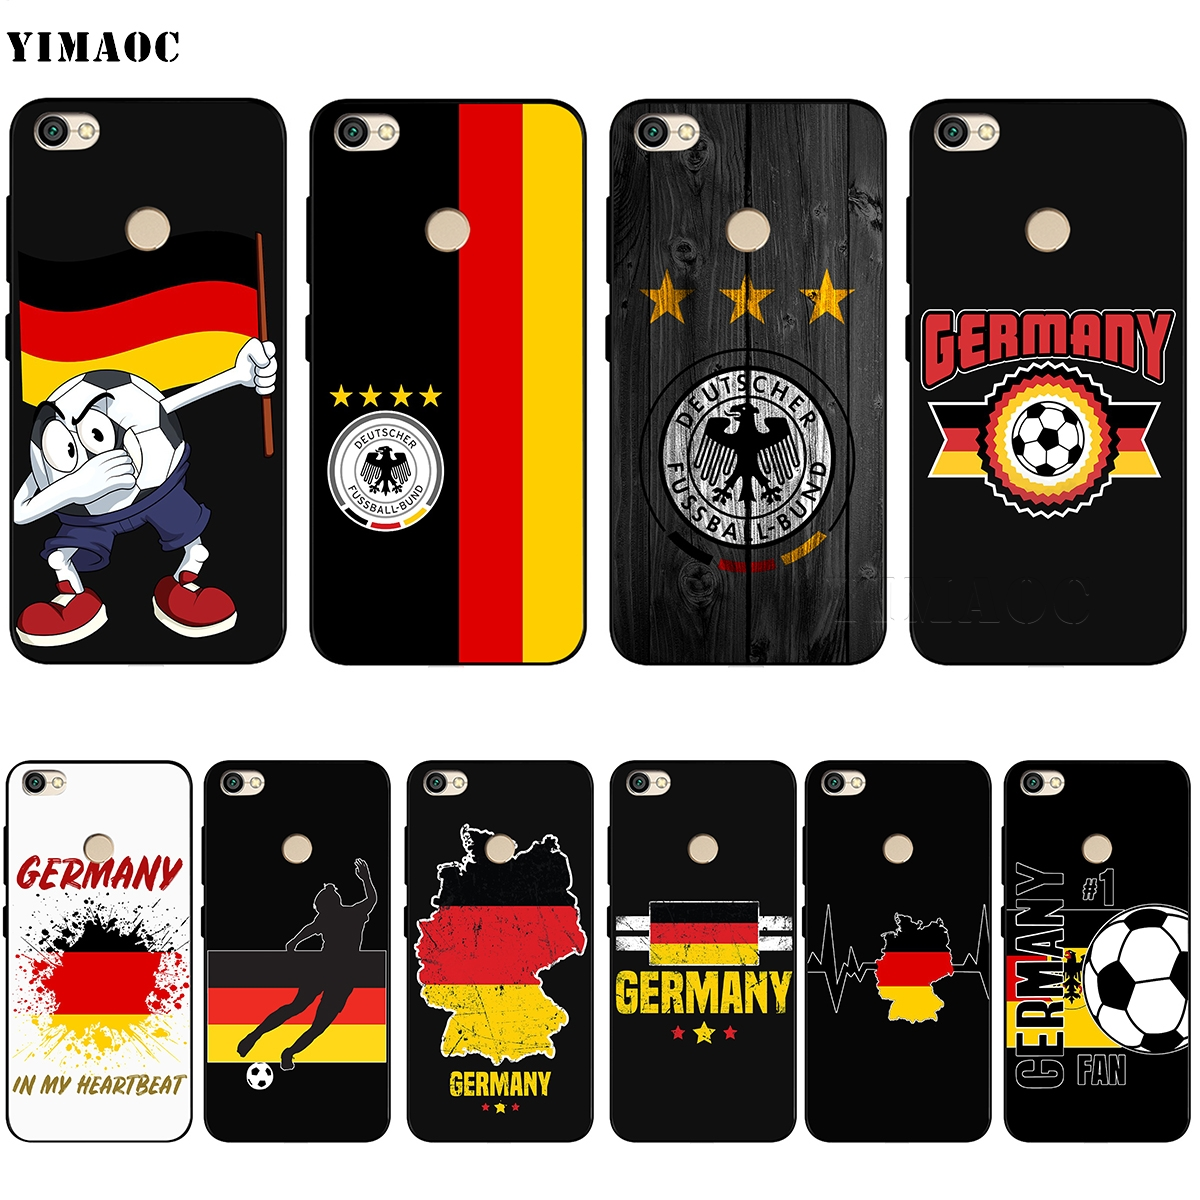 YIMAOC Germany Soccer Soft Silicone Case for Xiaomi Redmi Note 4 4X 4A 5 5A 6 MI A1 mi6 Prime Plus